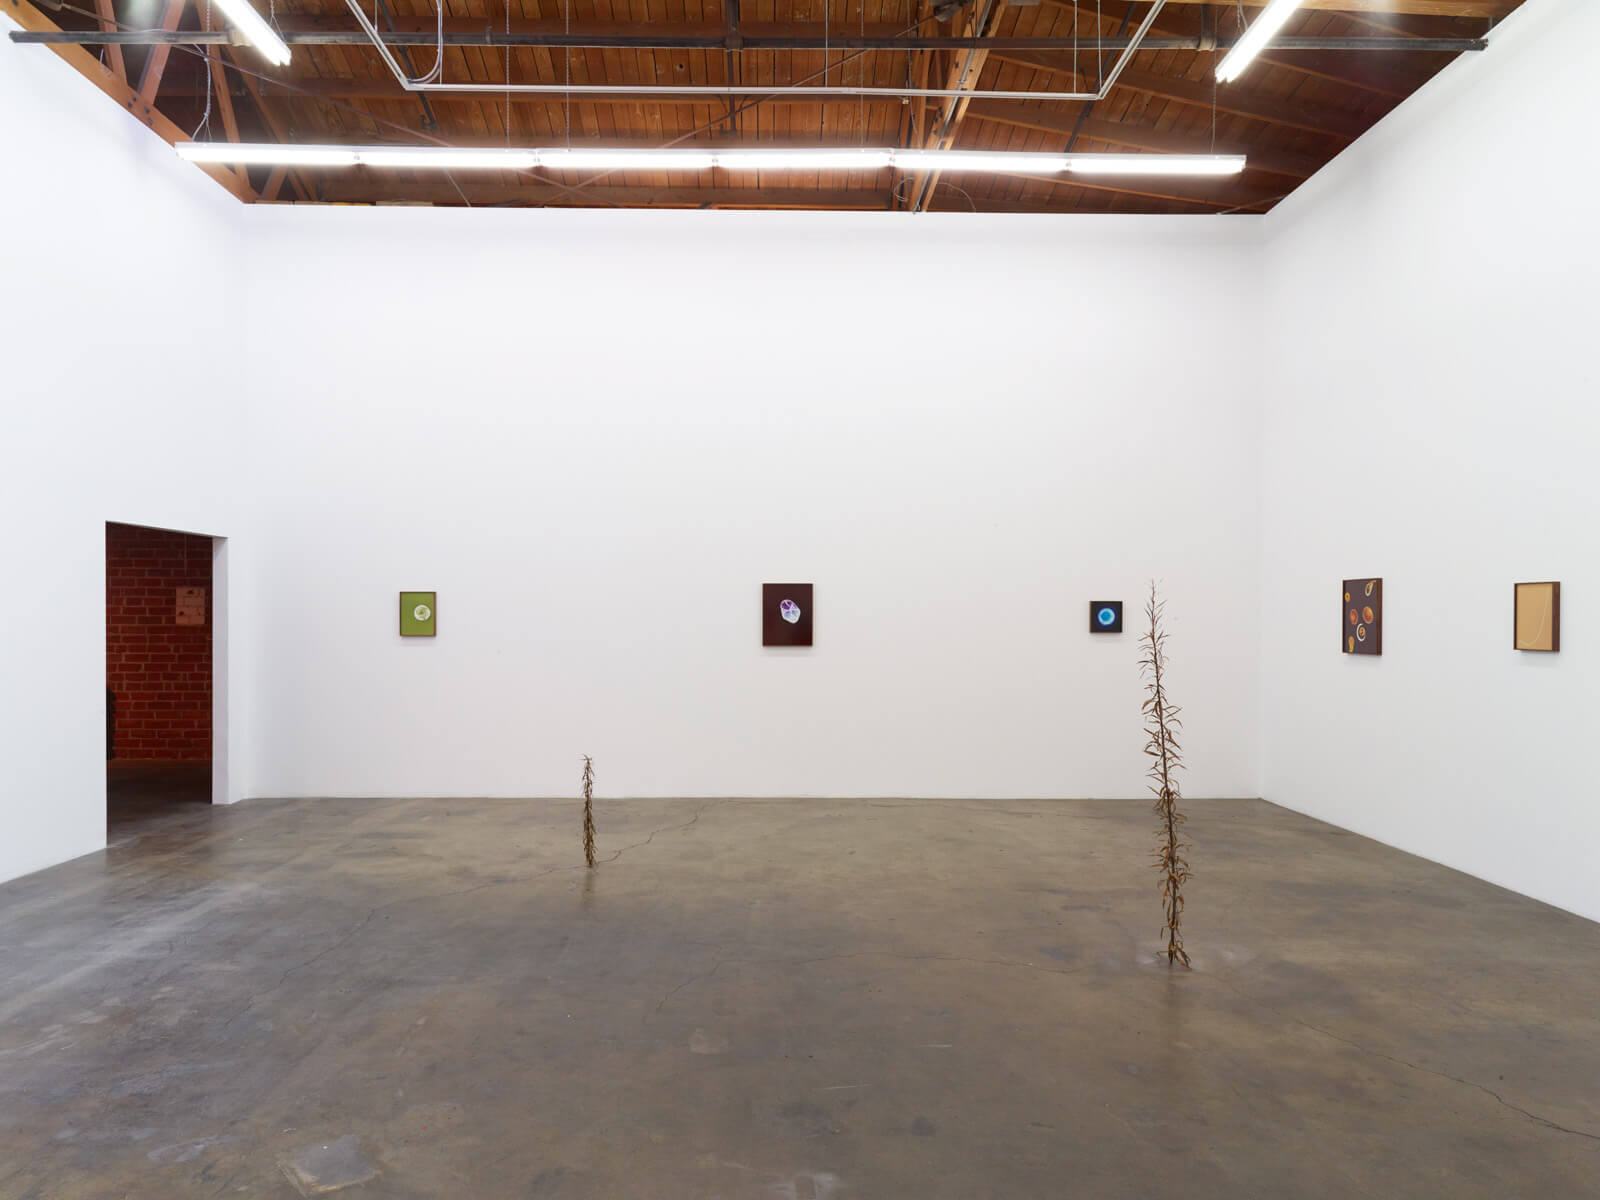 2_kelly-akashi-being-as-a-thing-installation-view